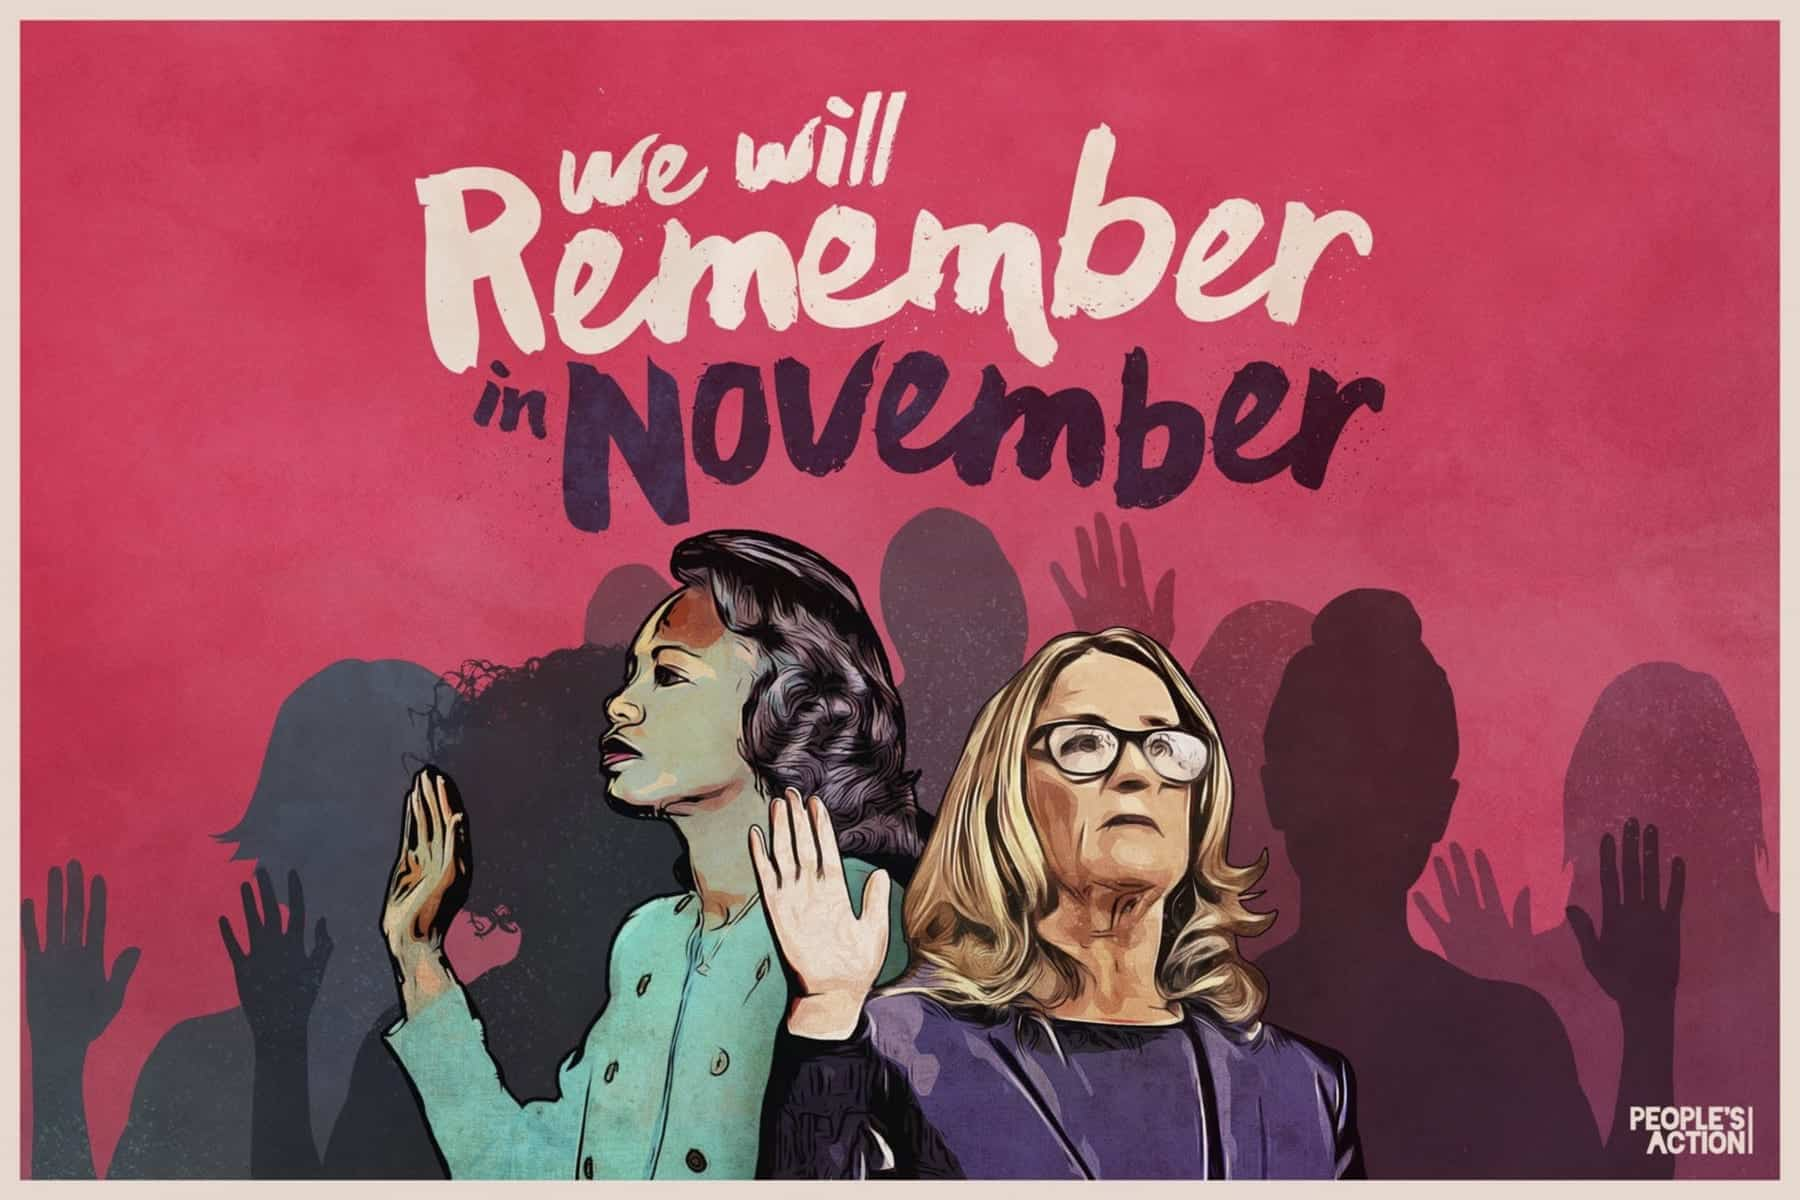 Remember in November (kavanaugh)